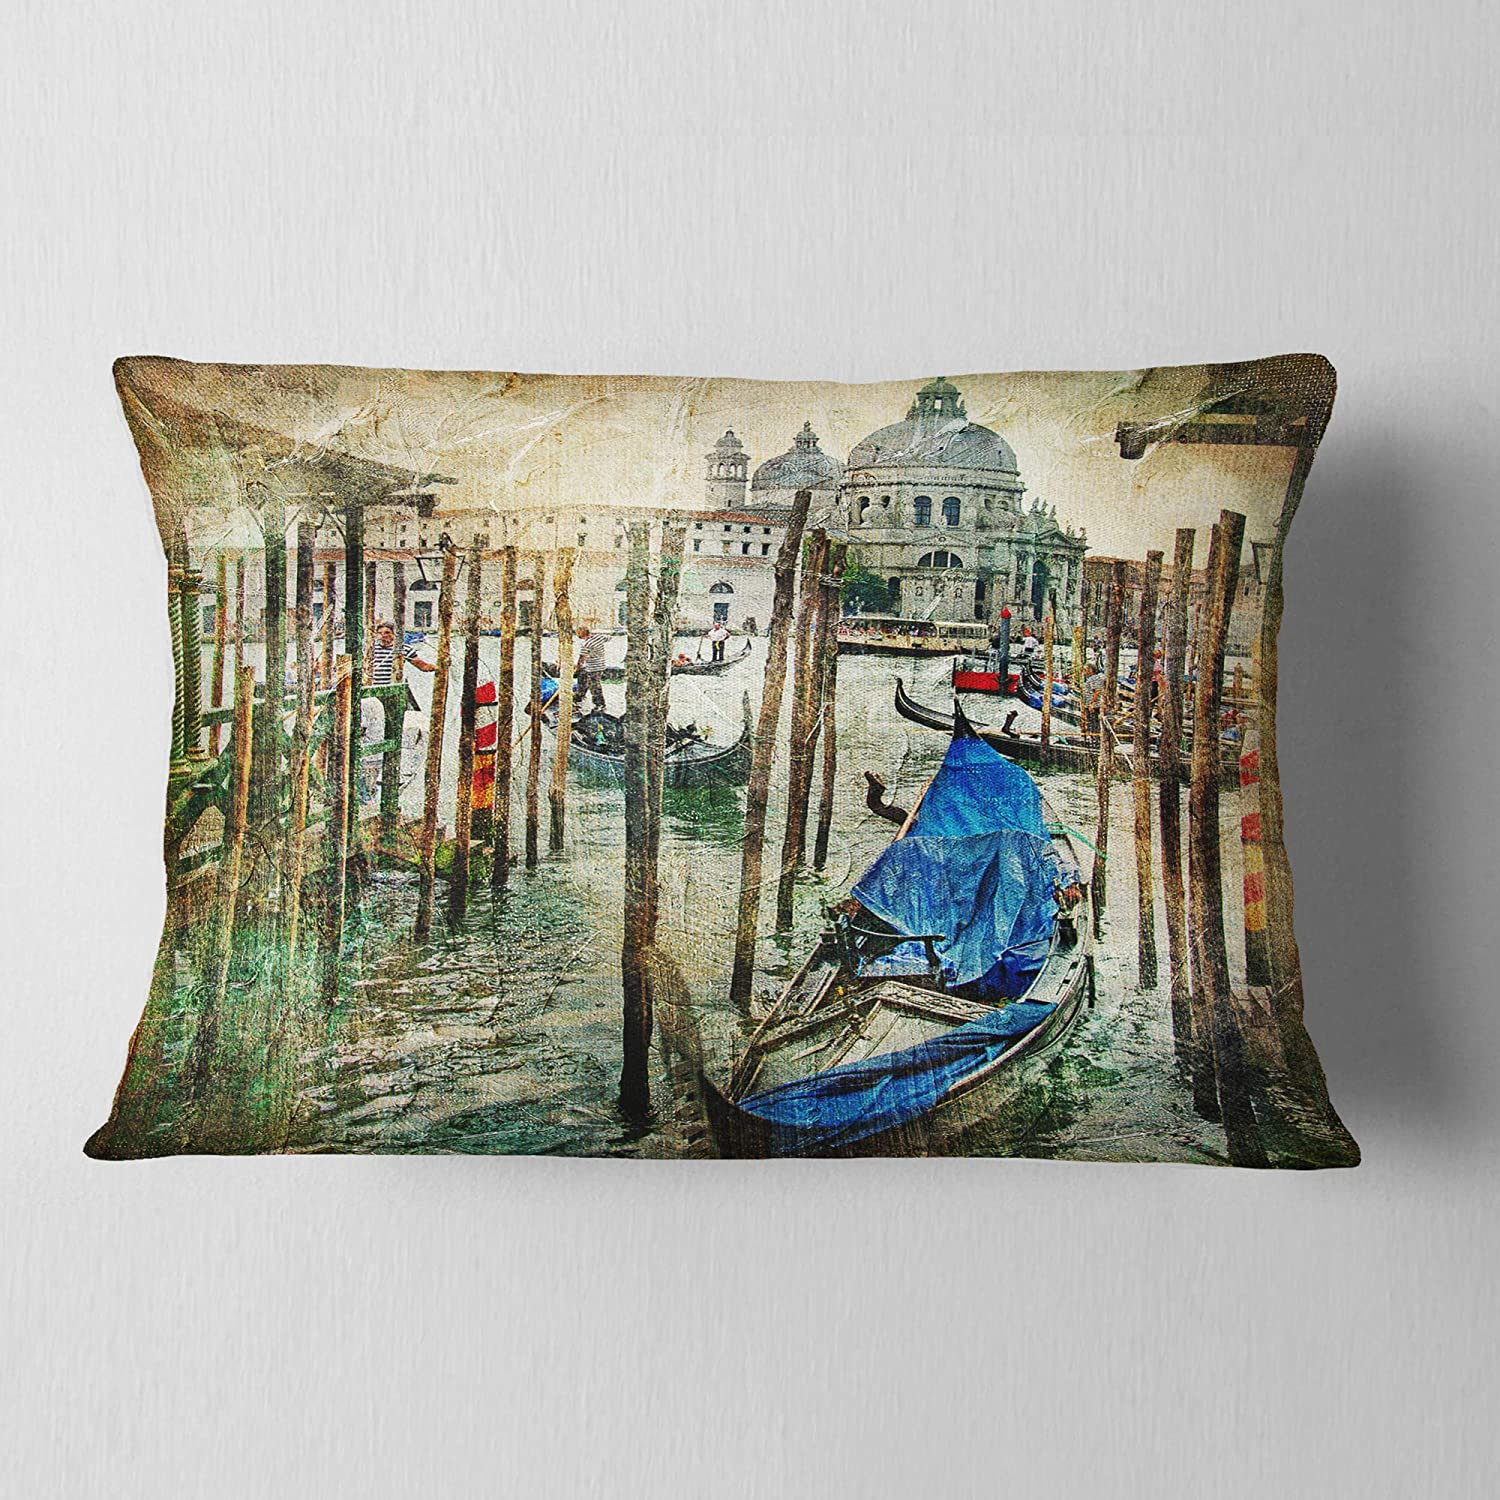 Sofa Designart CU6266-16-16-C Beautiful Venice Landscape Printed Round Cushion Cover for Living Room Throw Pillow 16 Inches